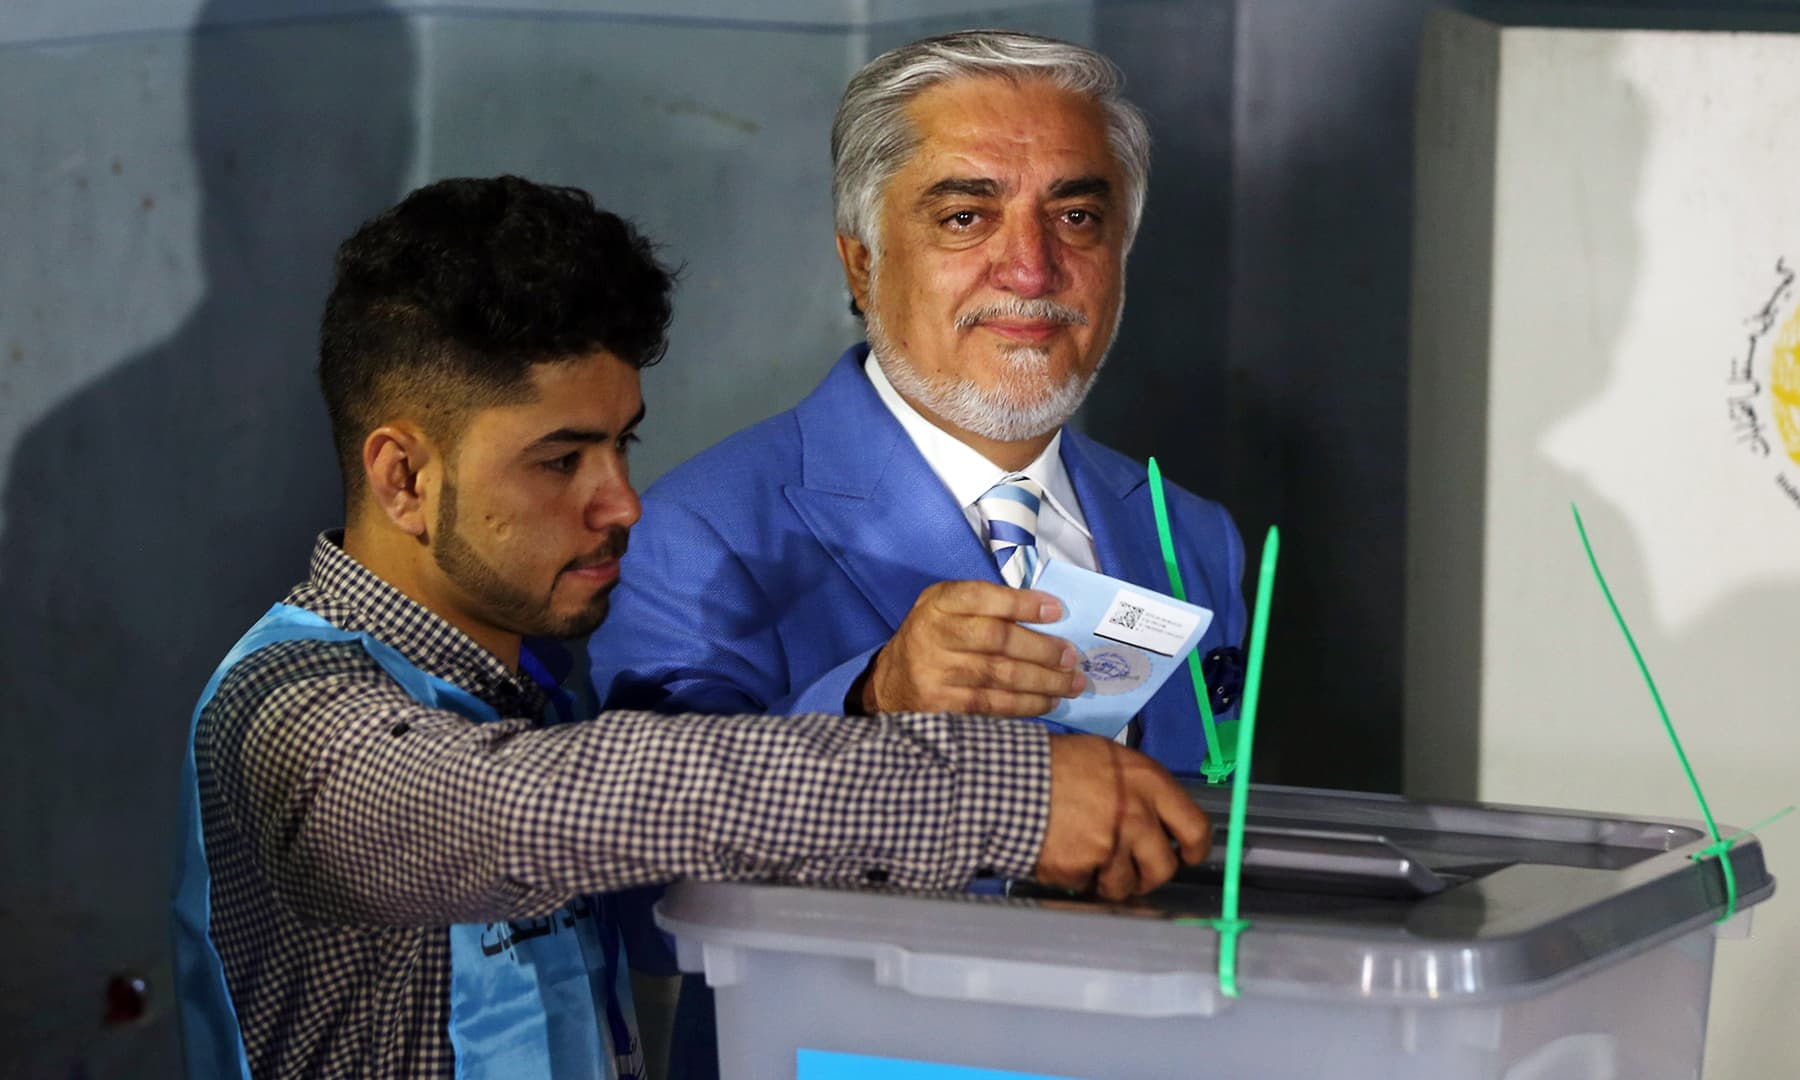 Afghan presidential candidate Abdullah Abdullah casts his vote at a polling station in Kabul. — Reuters